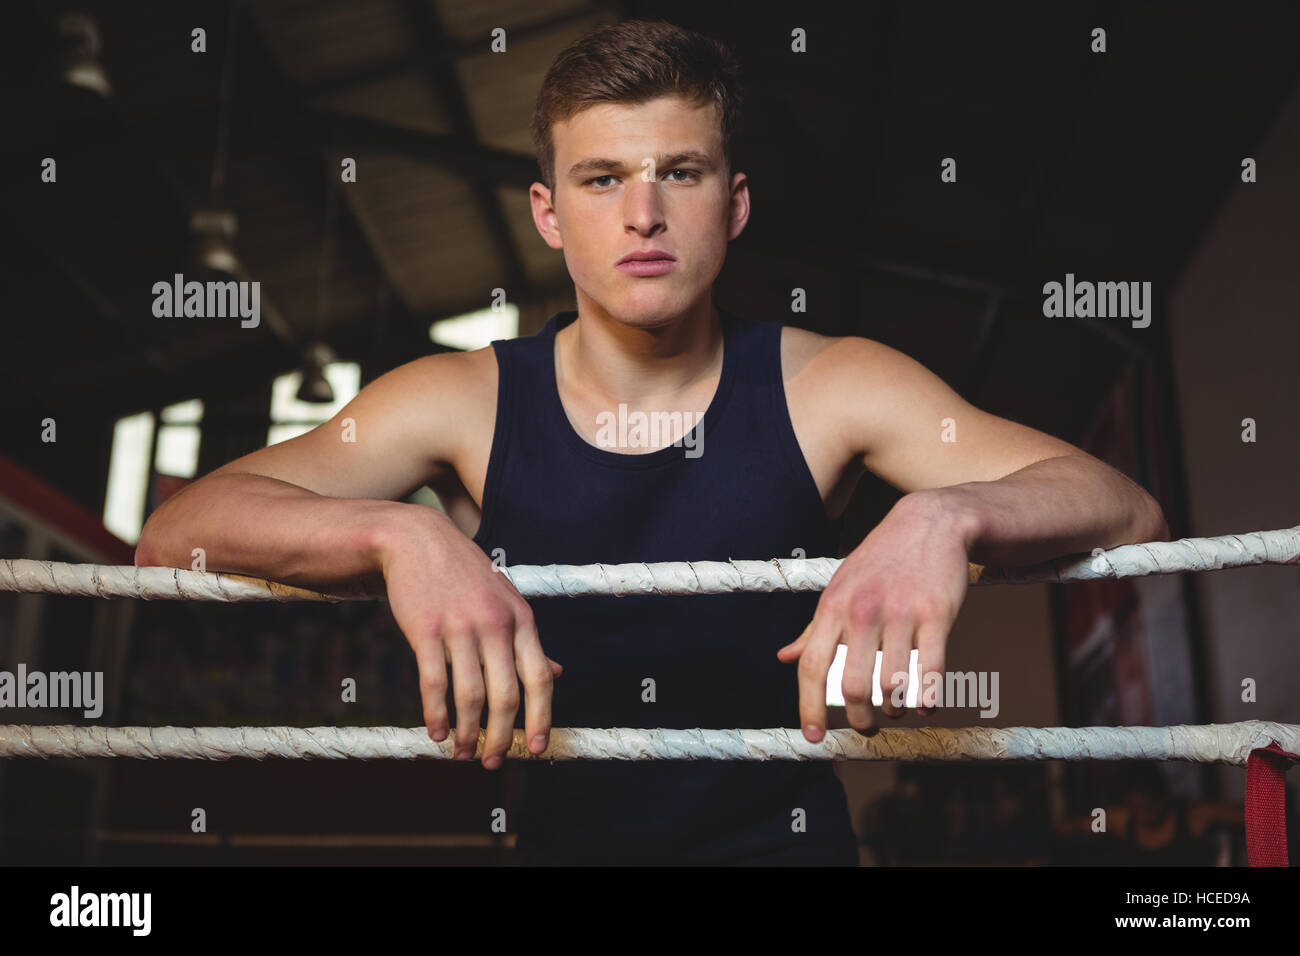 Boxer standing in boxing ring - Stock Image